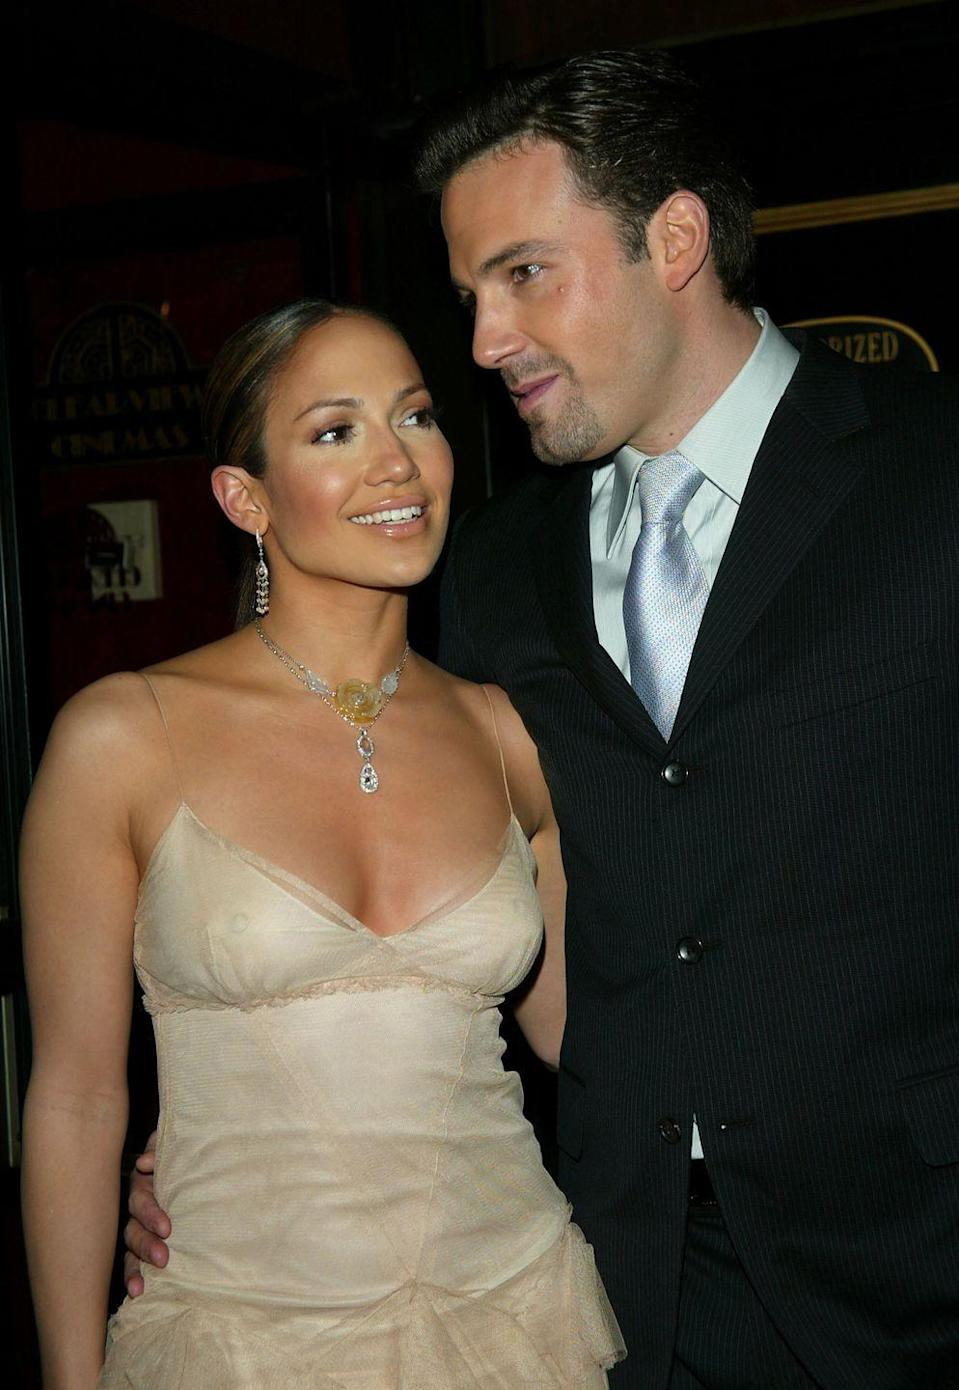 <p>Lopez and Affleck arrive at the Maid In Manhattan world premiere at The Ziegfeld Theatre in New York City on December 8, 2002.</p>